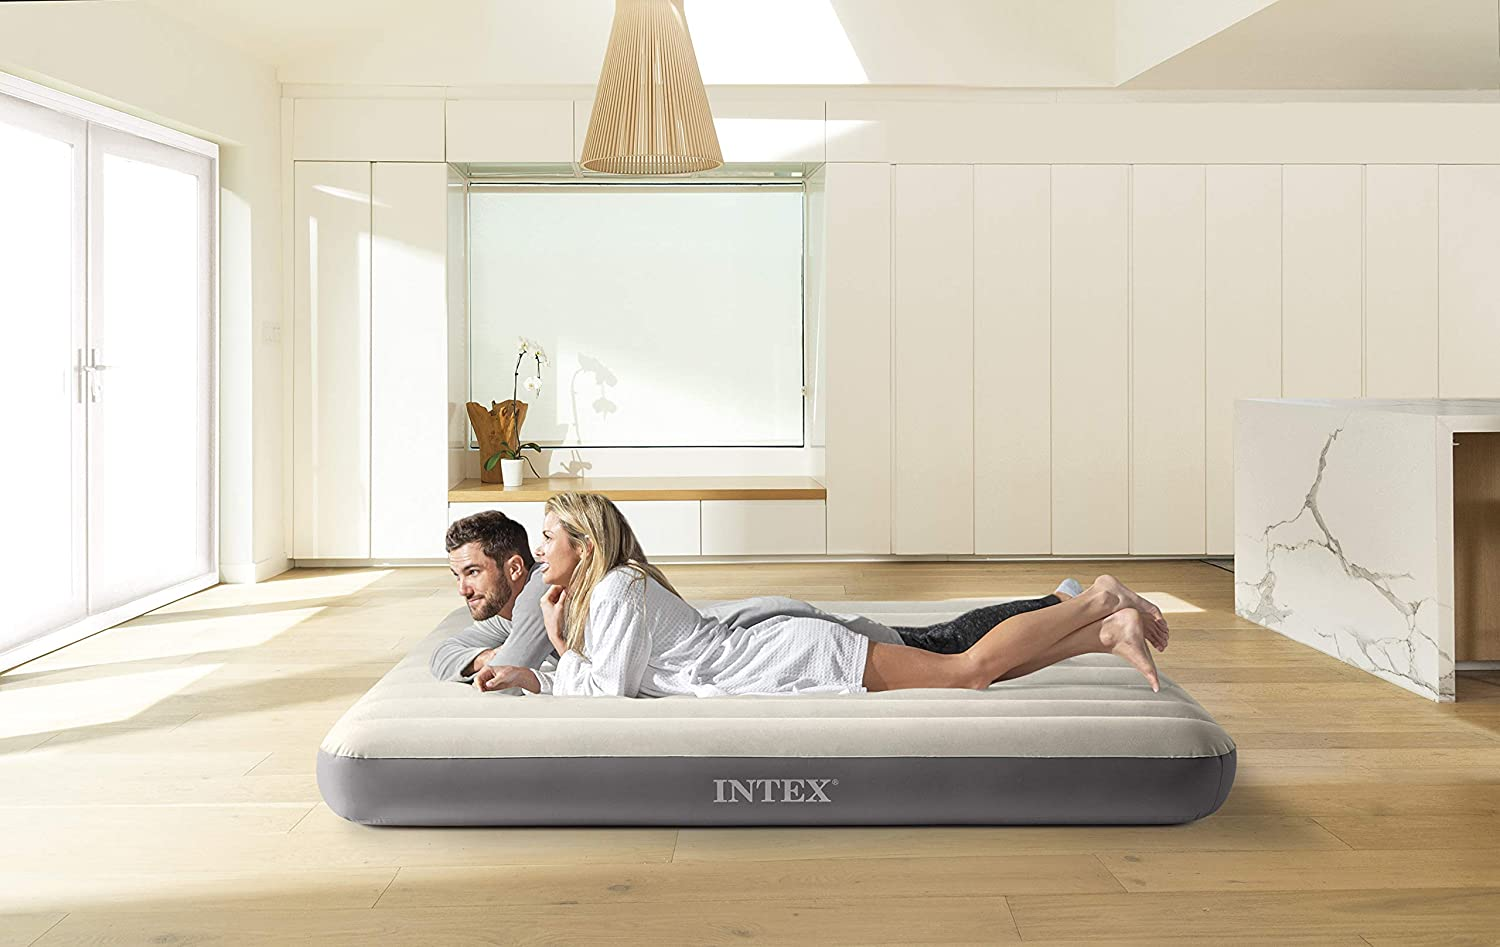 Intex - Colchón hinchable Dura-Beam Standard DELUXE Single-High - 152 x 203 x 25 cm (64103), 152 x 203 cm, inflable, pvc (93%), abs (1%), polyester ...